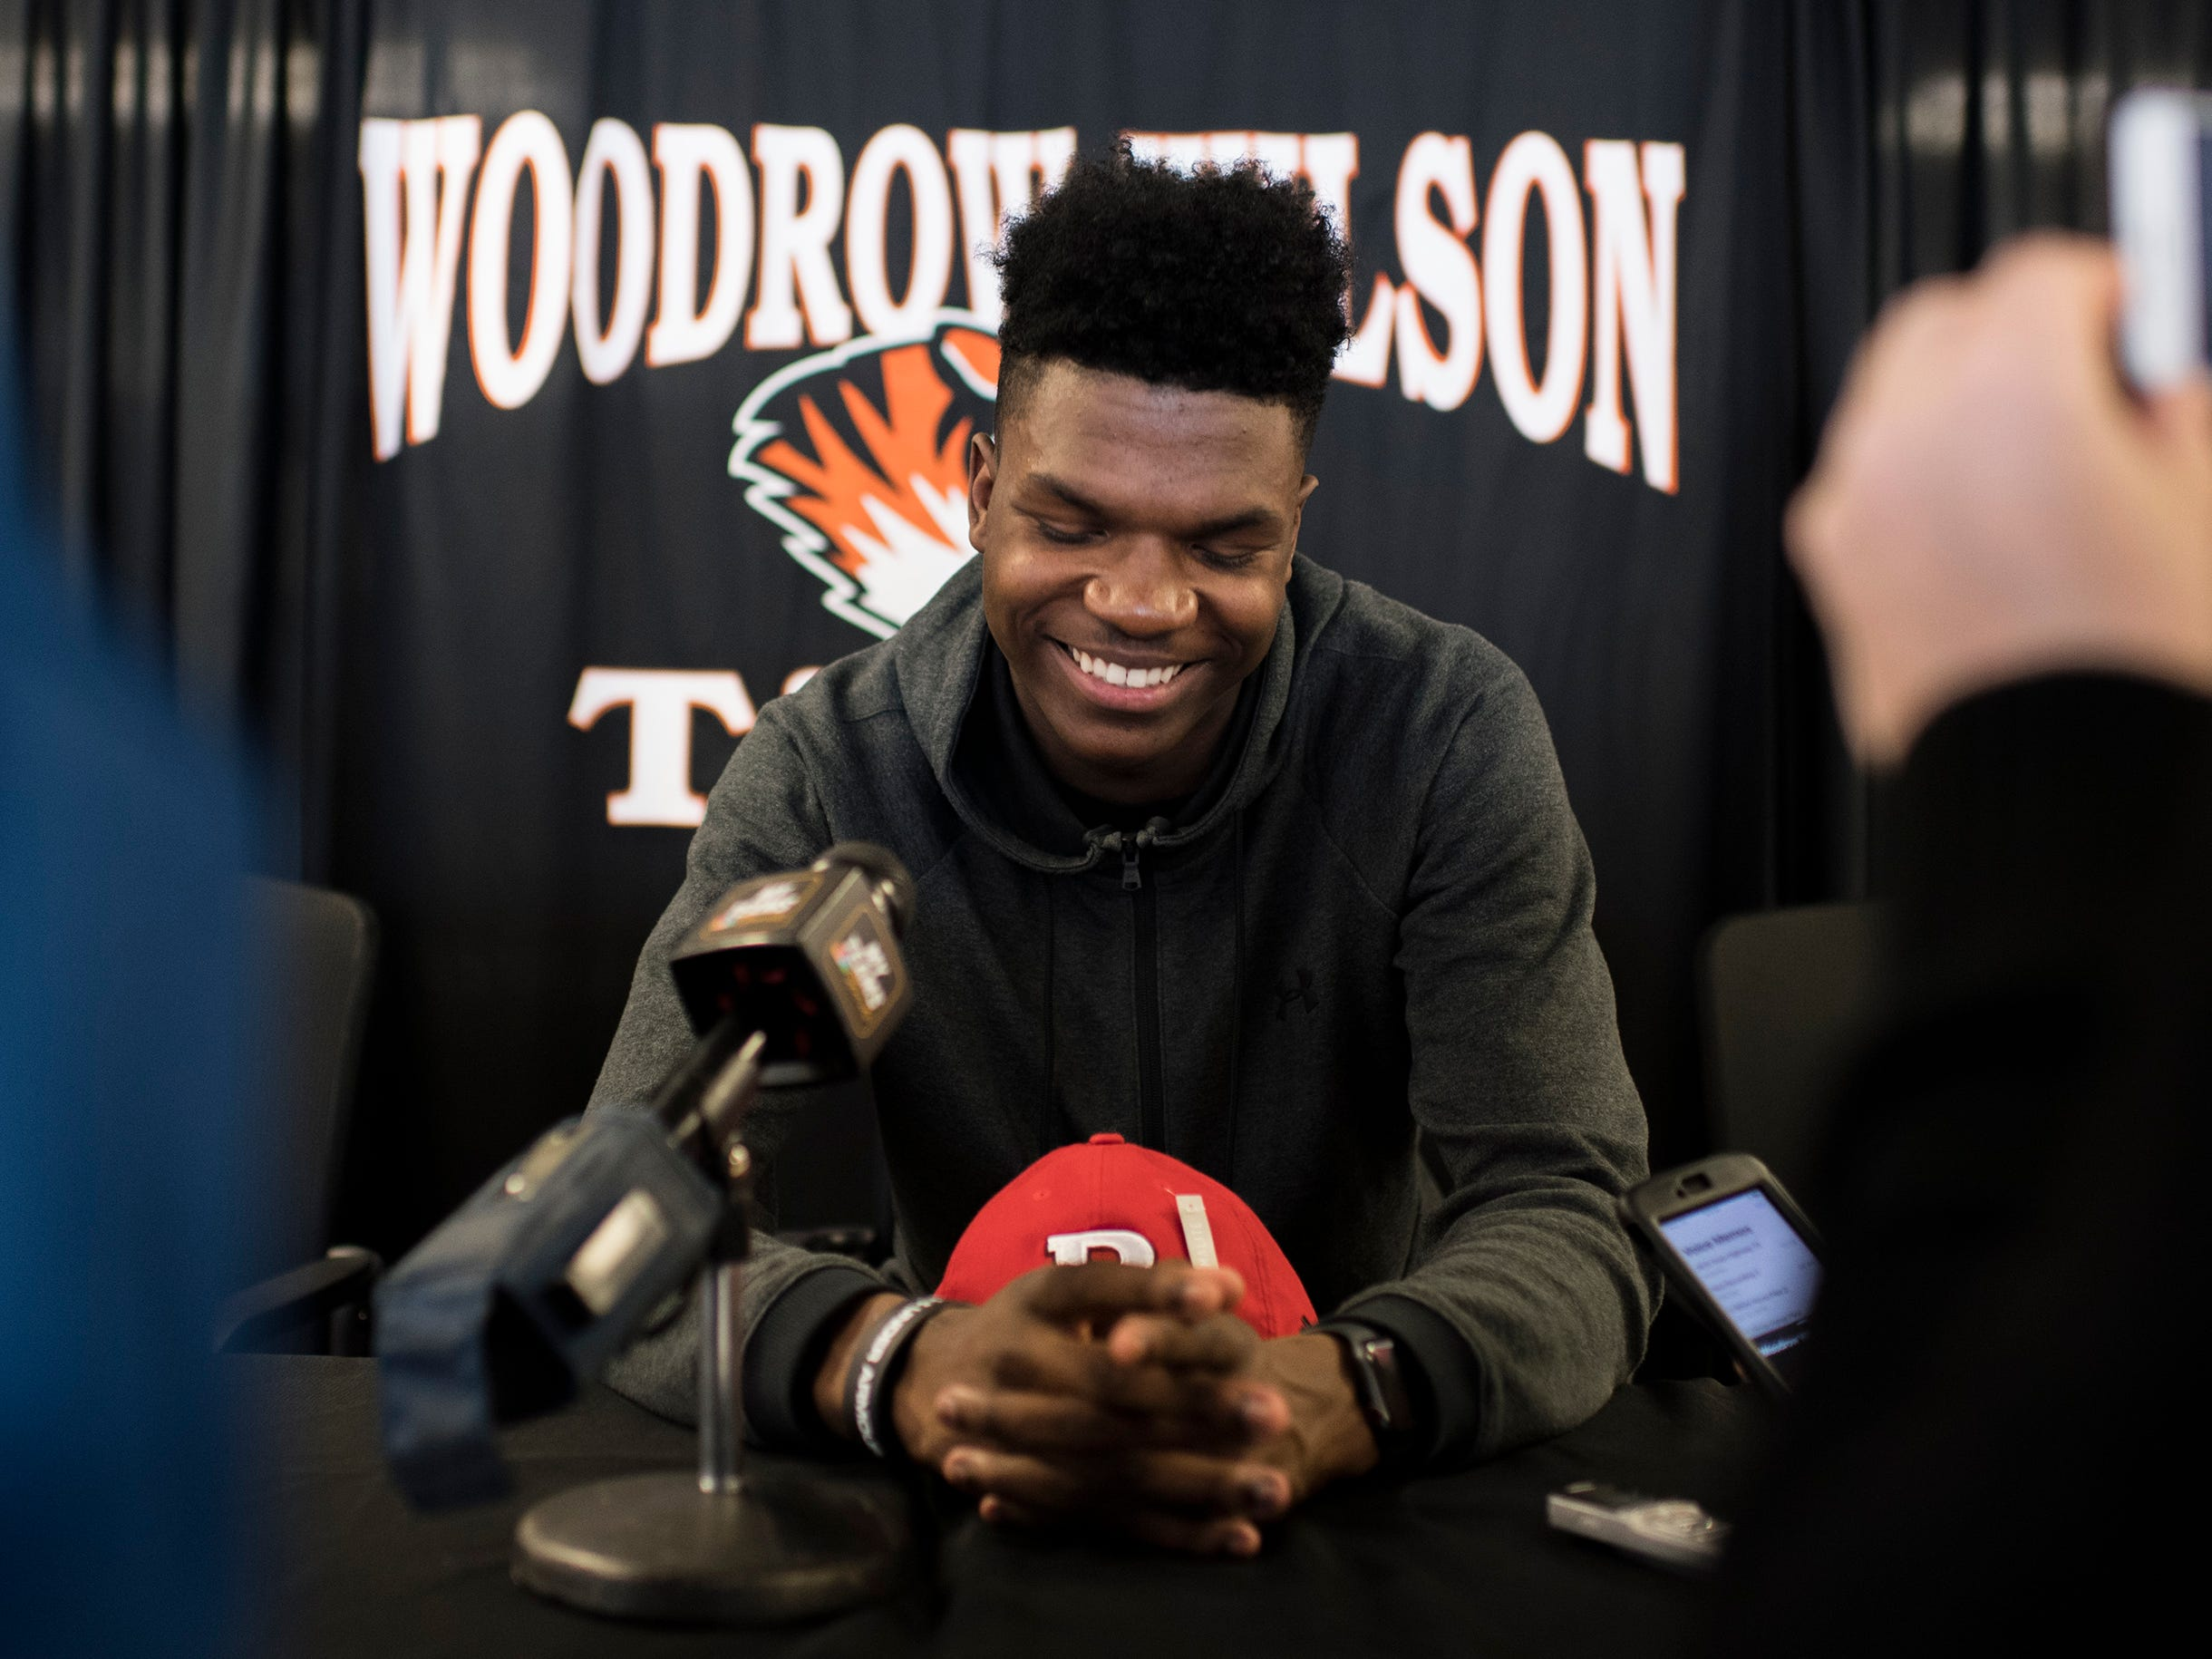 Woodrow Wilson wide receiver Stanley King smiles while speaking with media following his announcement to play for Rutgers University Wednesday, Feb. 6, 2019 at Woodrow Wilson High School in Camden, N.J.